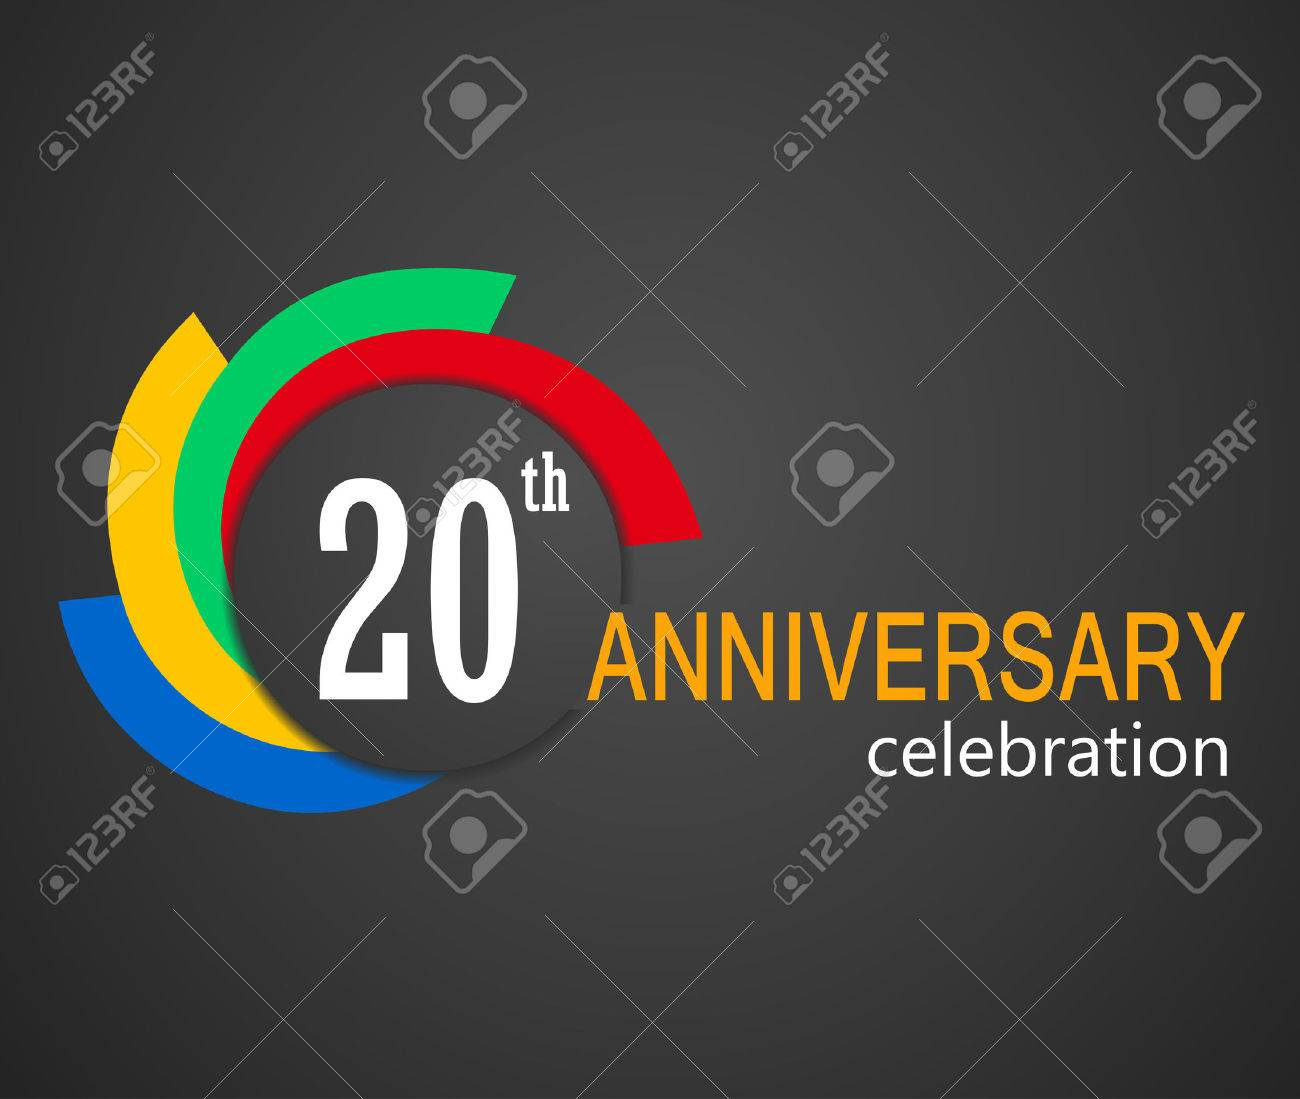 20th Anniversary celebration background, 20 years anniversary card illustration - vector eps10 - 52216586